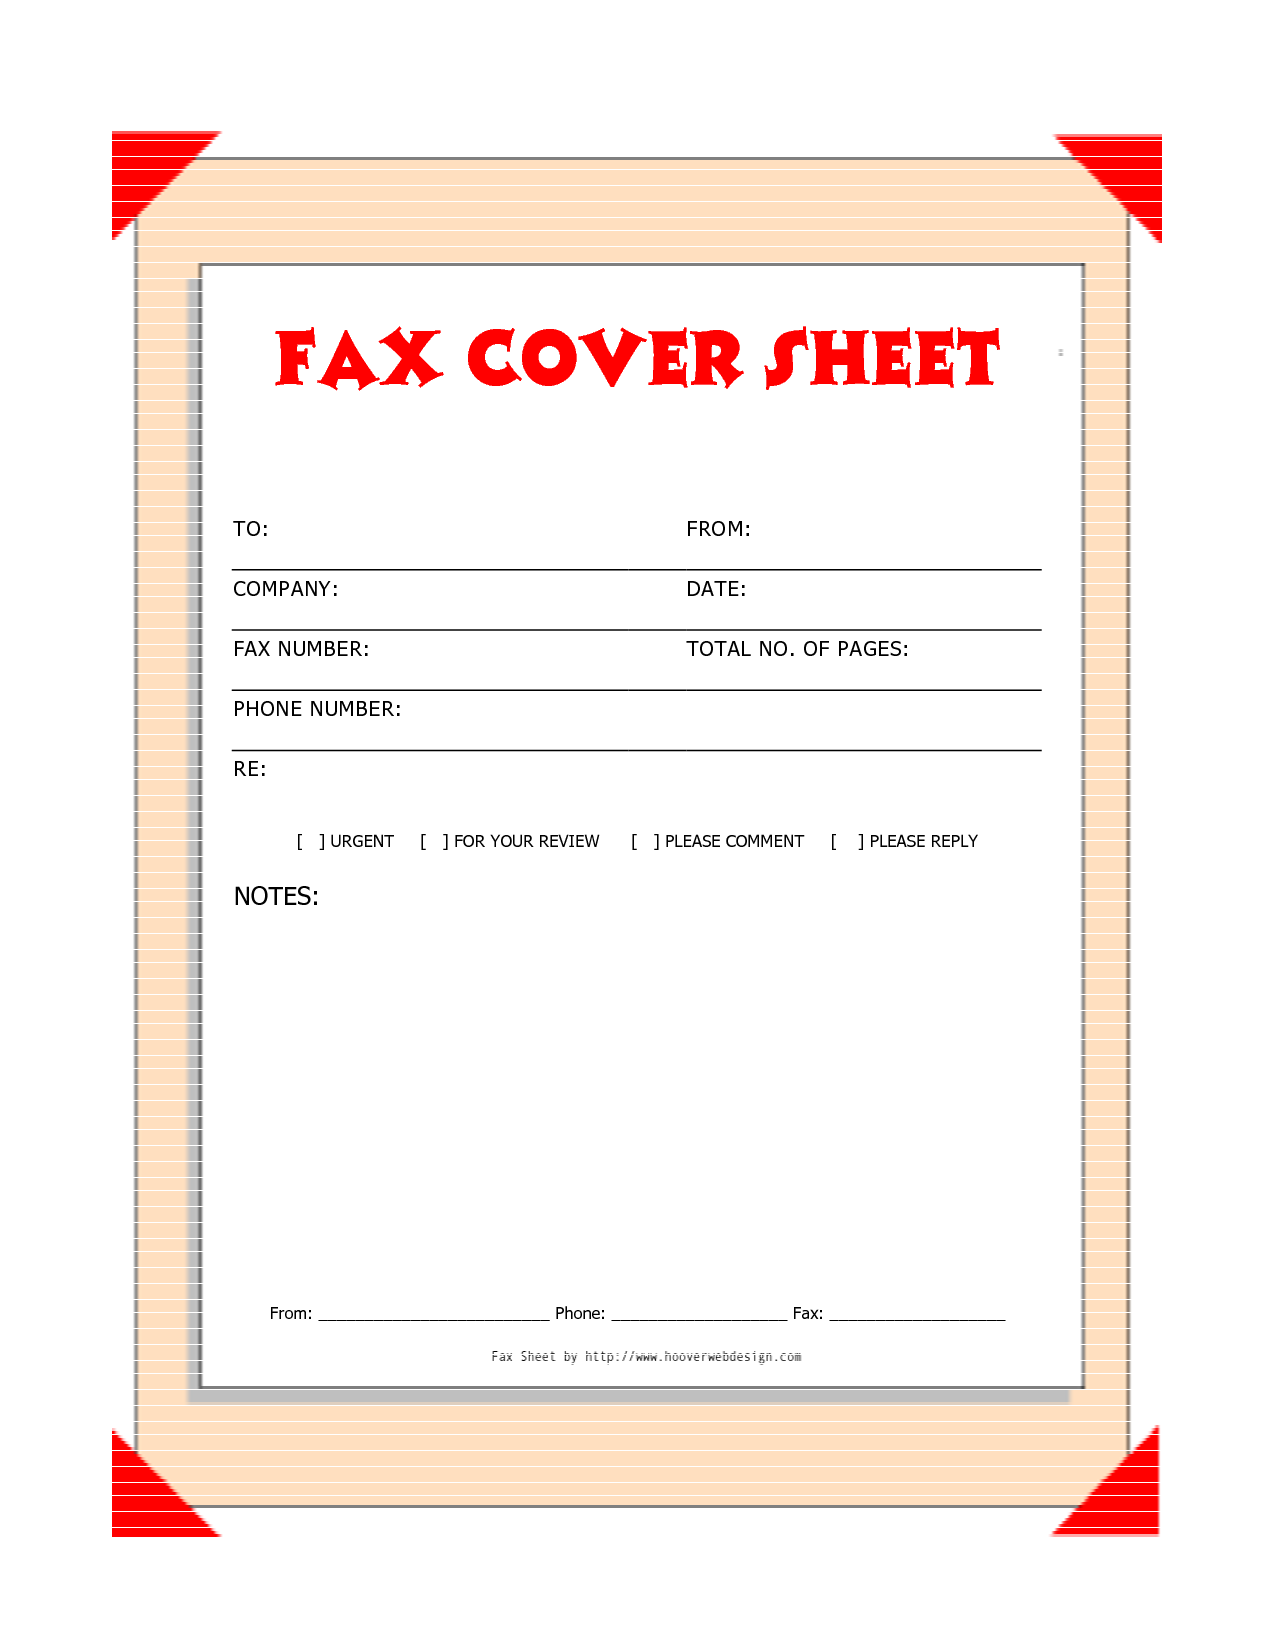 cover page template images fax cover sheet printable fax cover sheet template